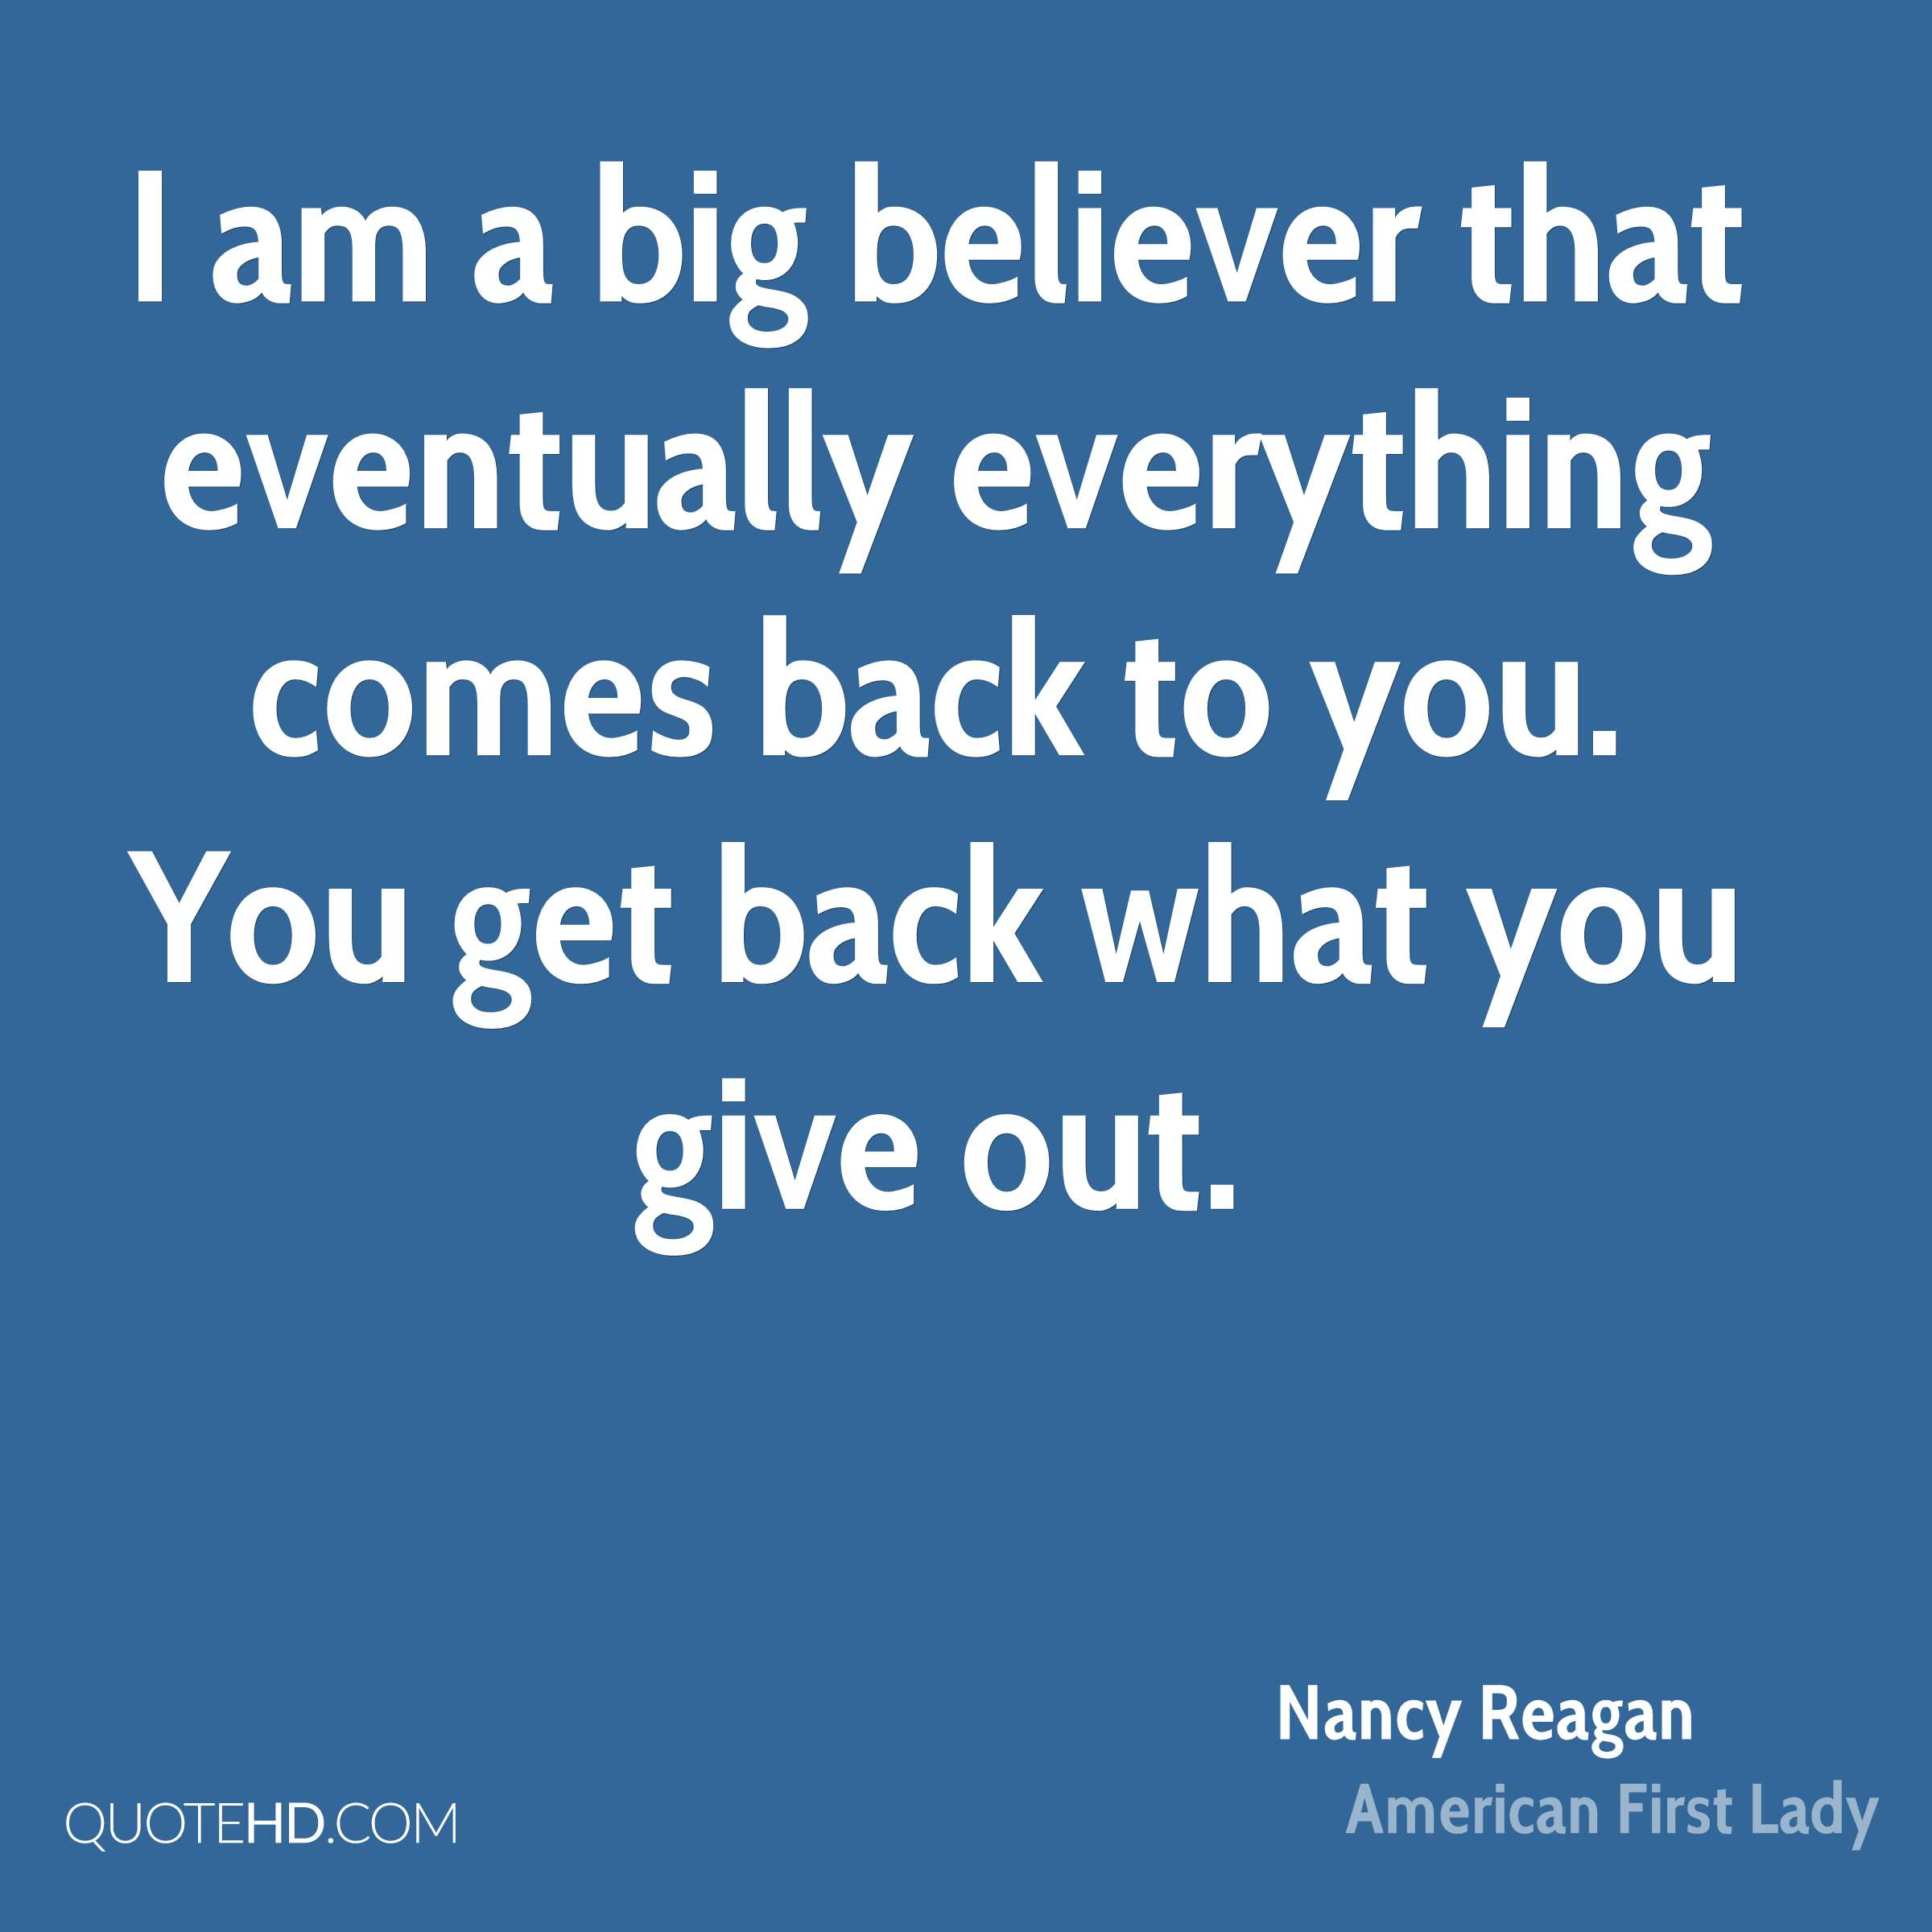 I am a big believer that eventually everything comes back to you. You get back what you give out.